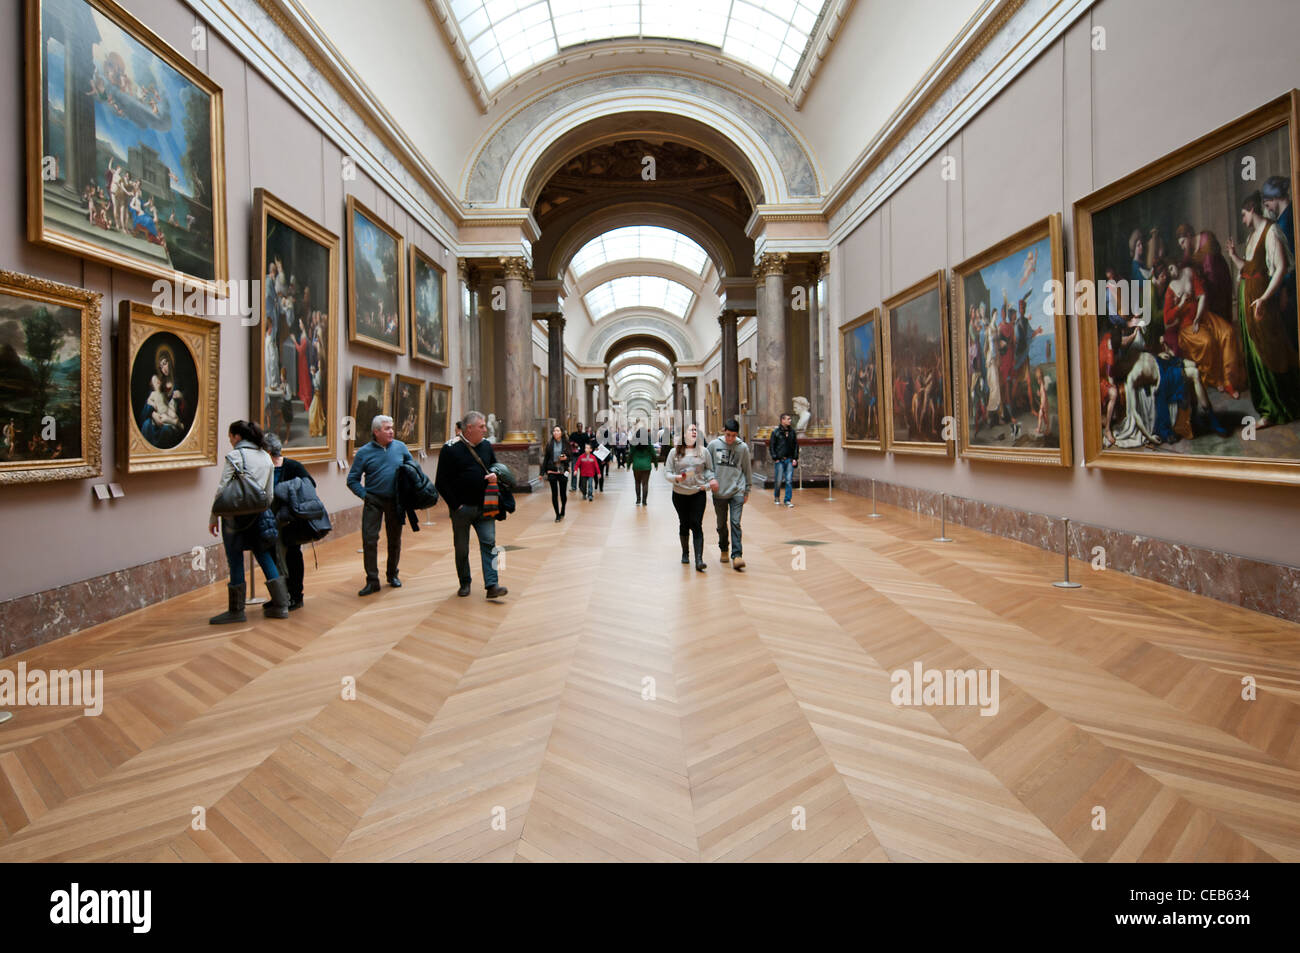 a view of the Louvre Museum in Paris, Stock Photo